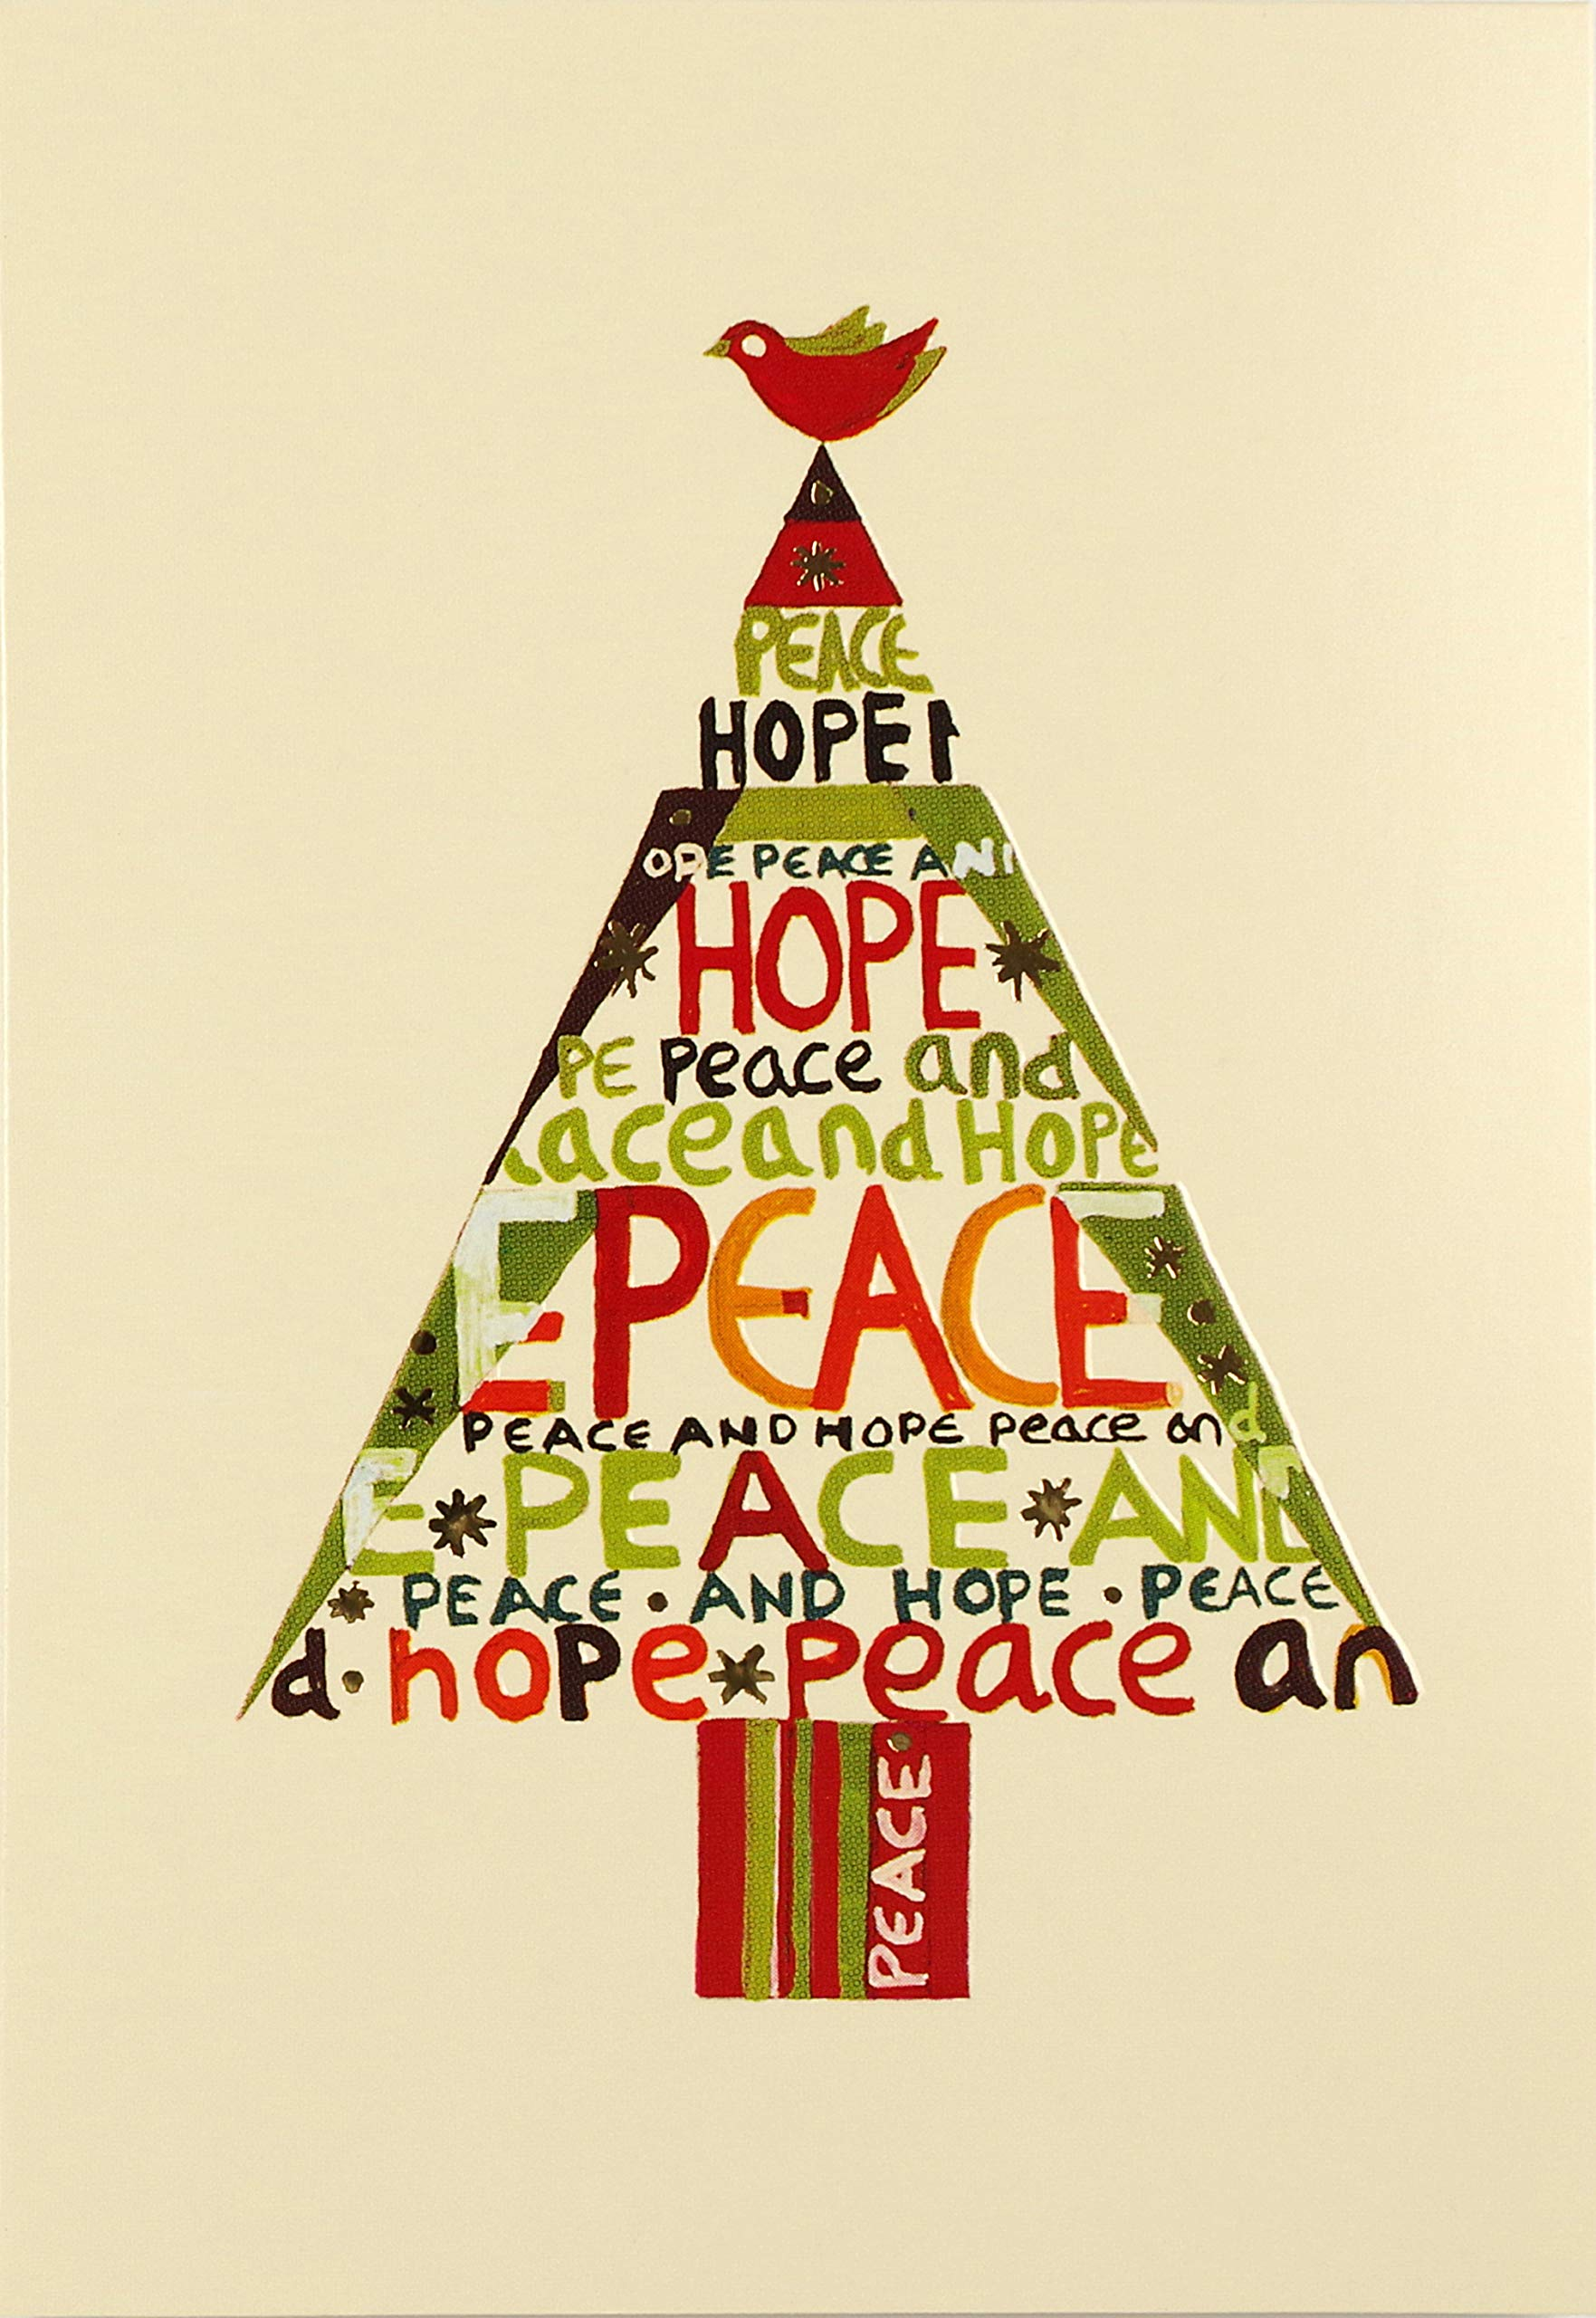 peace hope tree small boxed holiday cards christmas cards holiday cards greeting cards inc peter pauper press 9781441304759 amazon com books peter pauper press